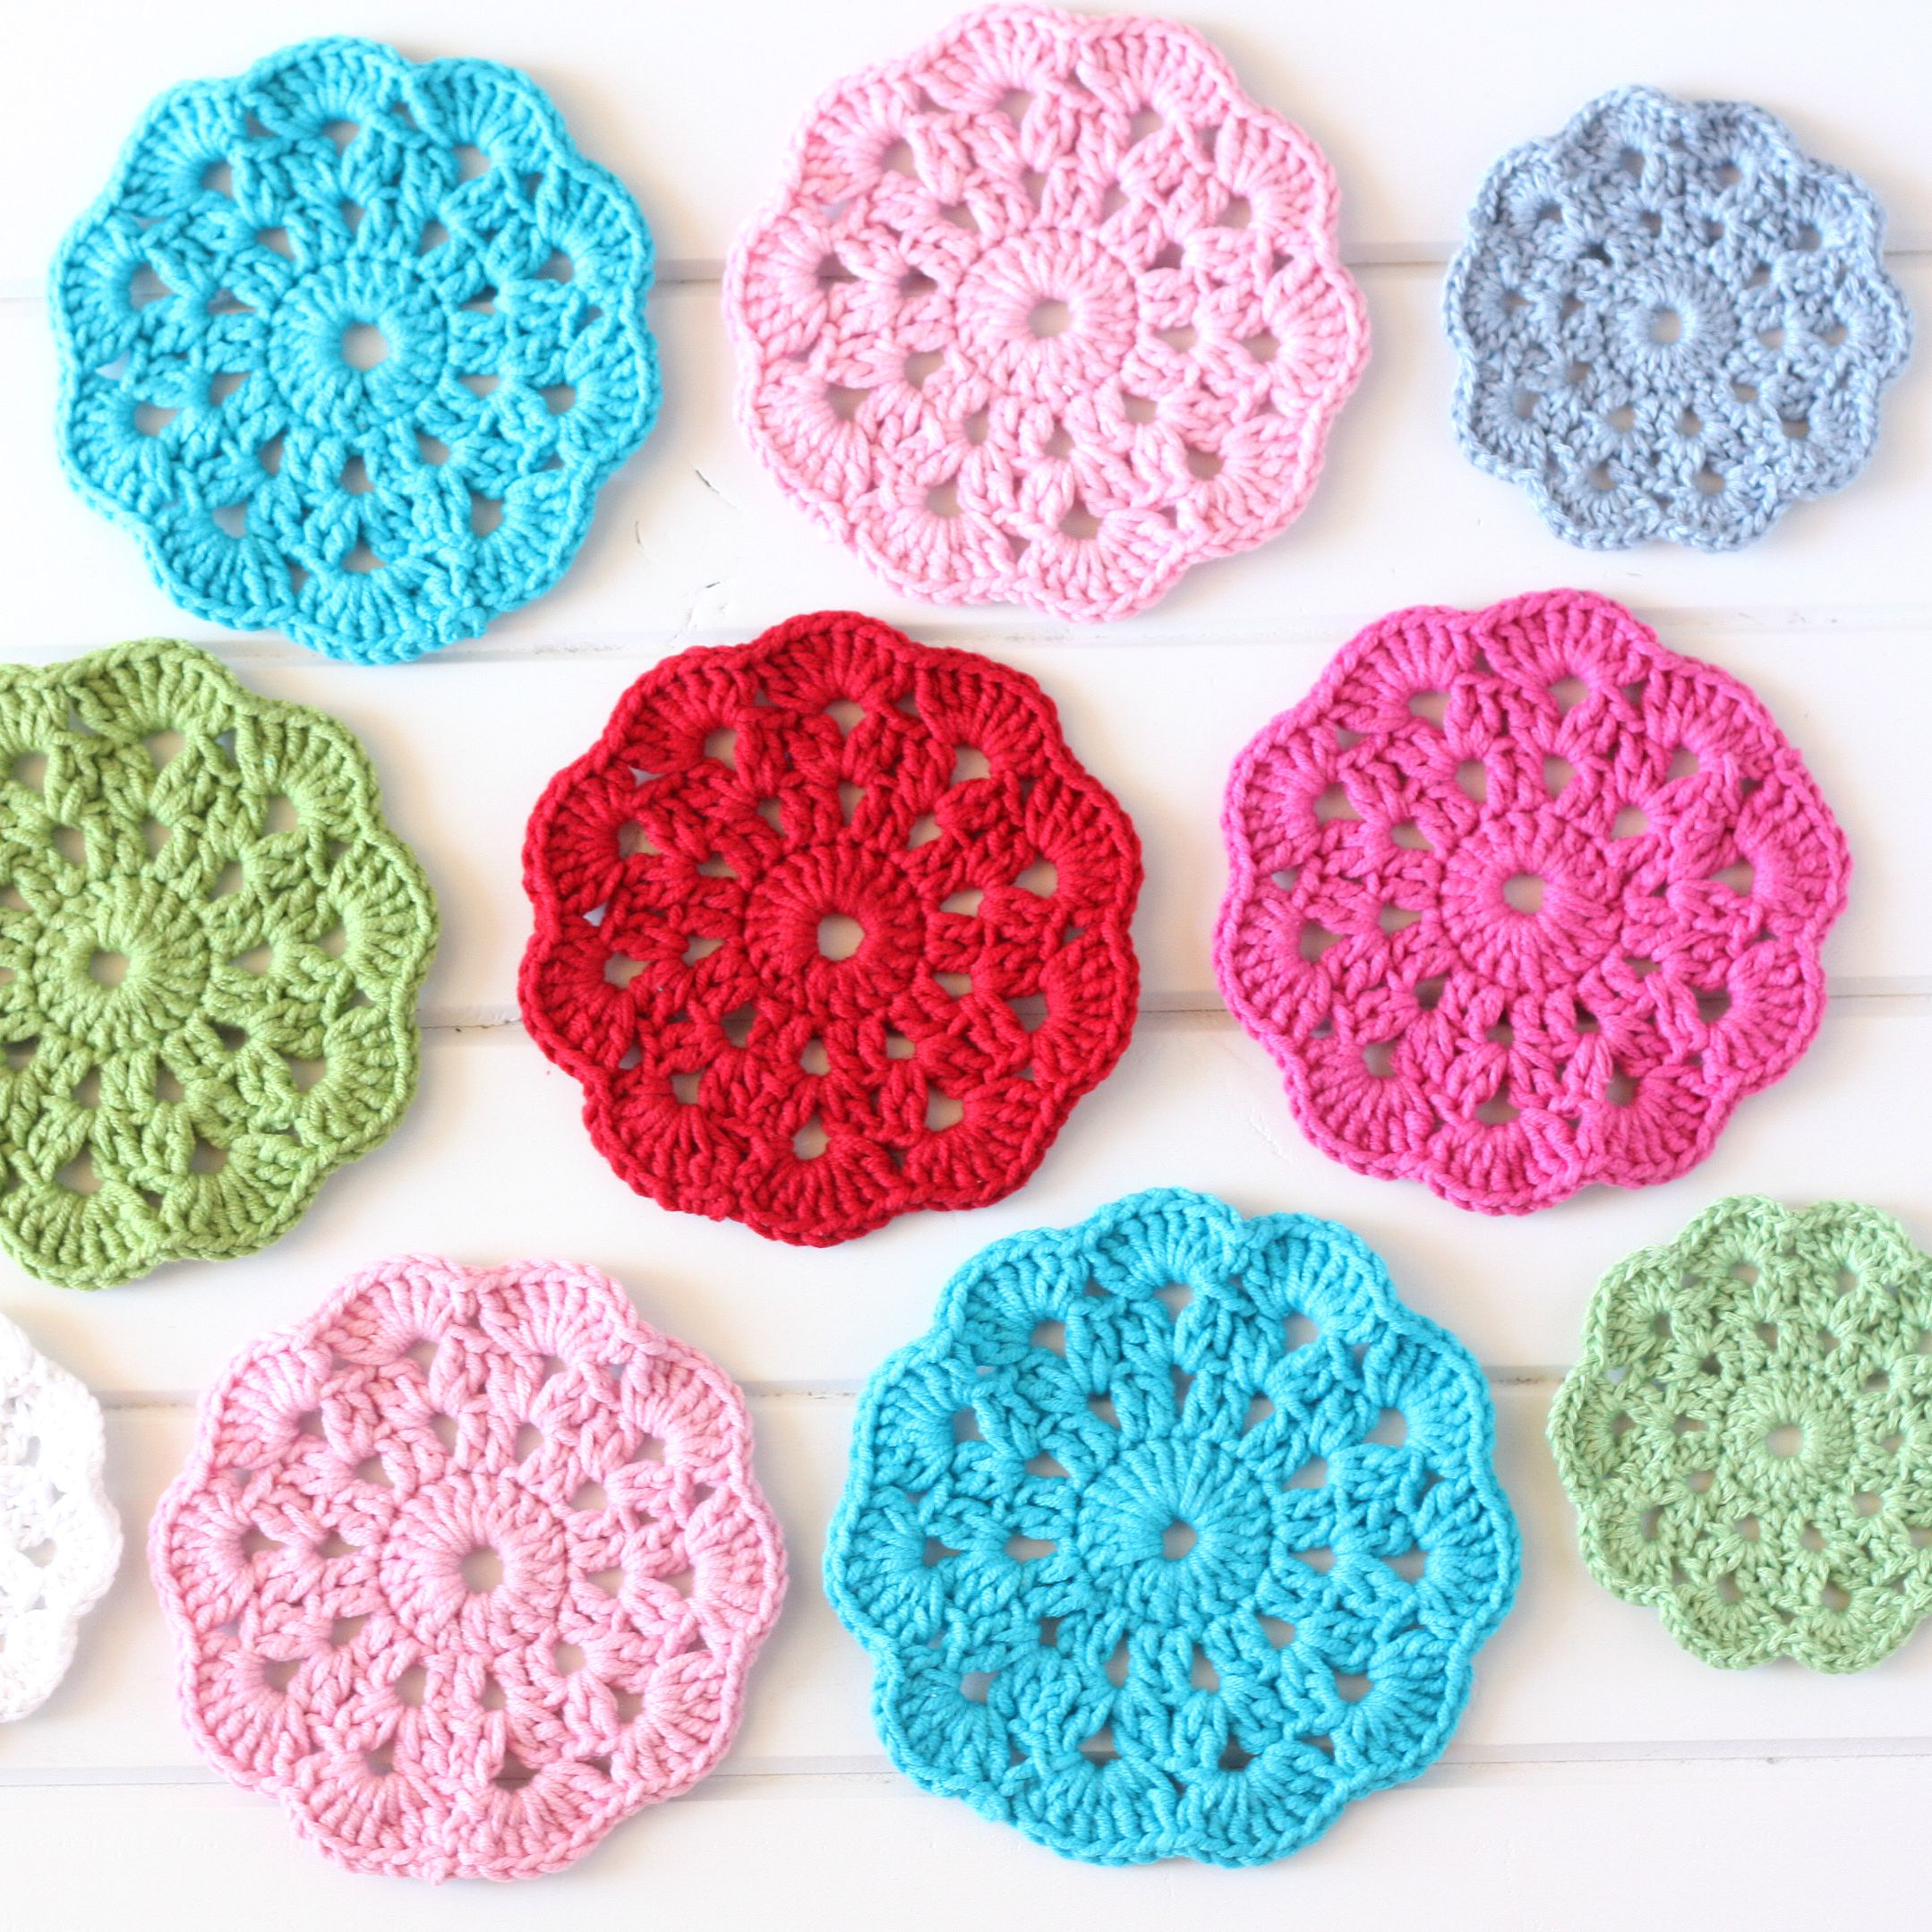 Crochet Coasters A Spoonful of Sugar Bloglovin?